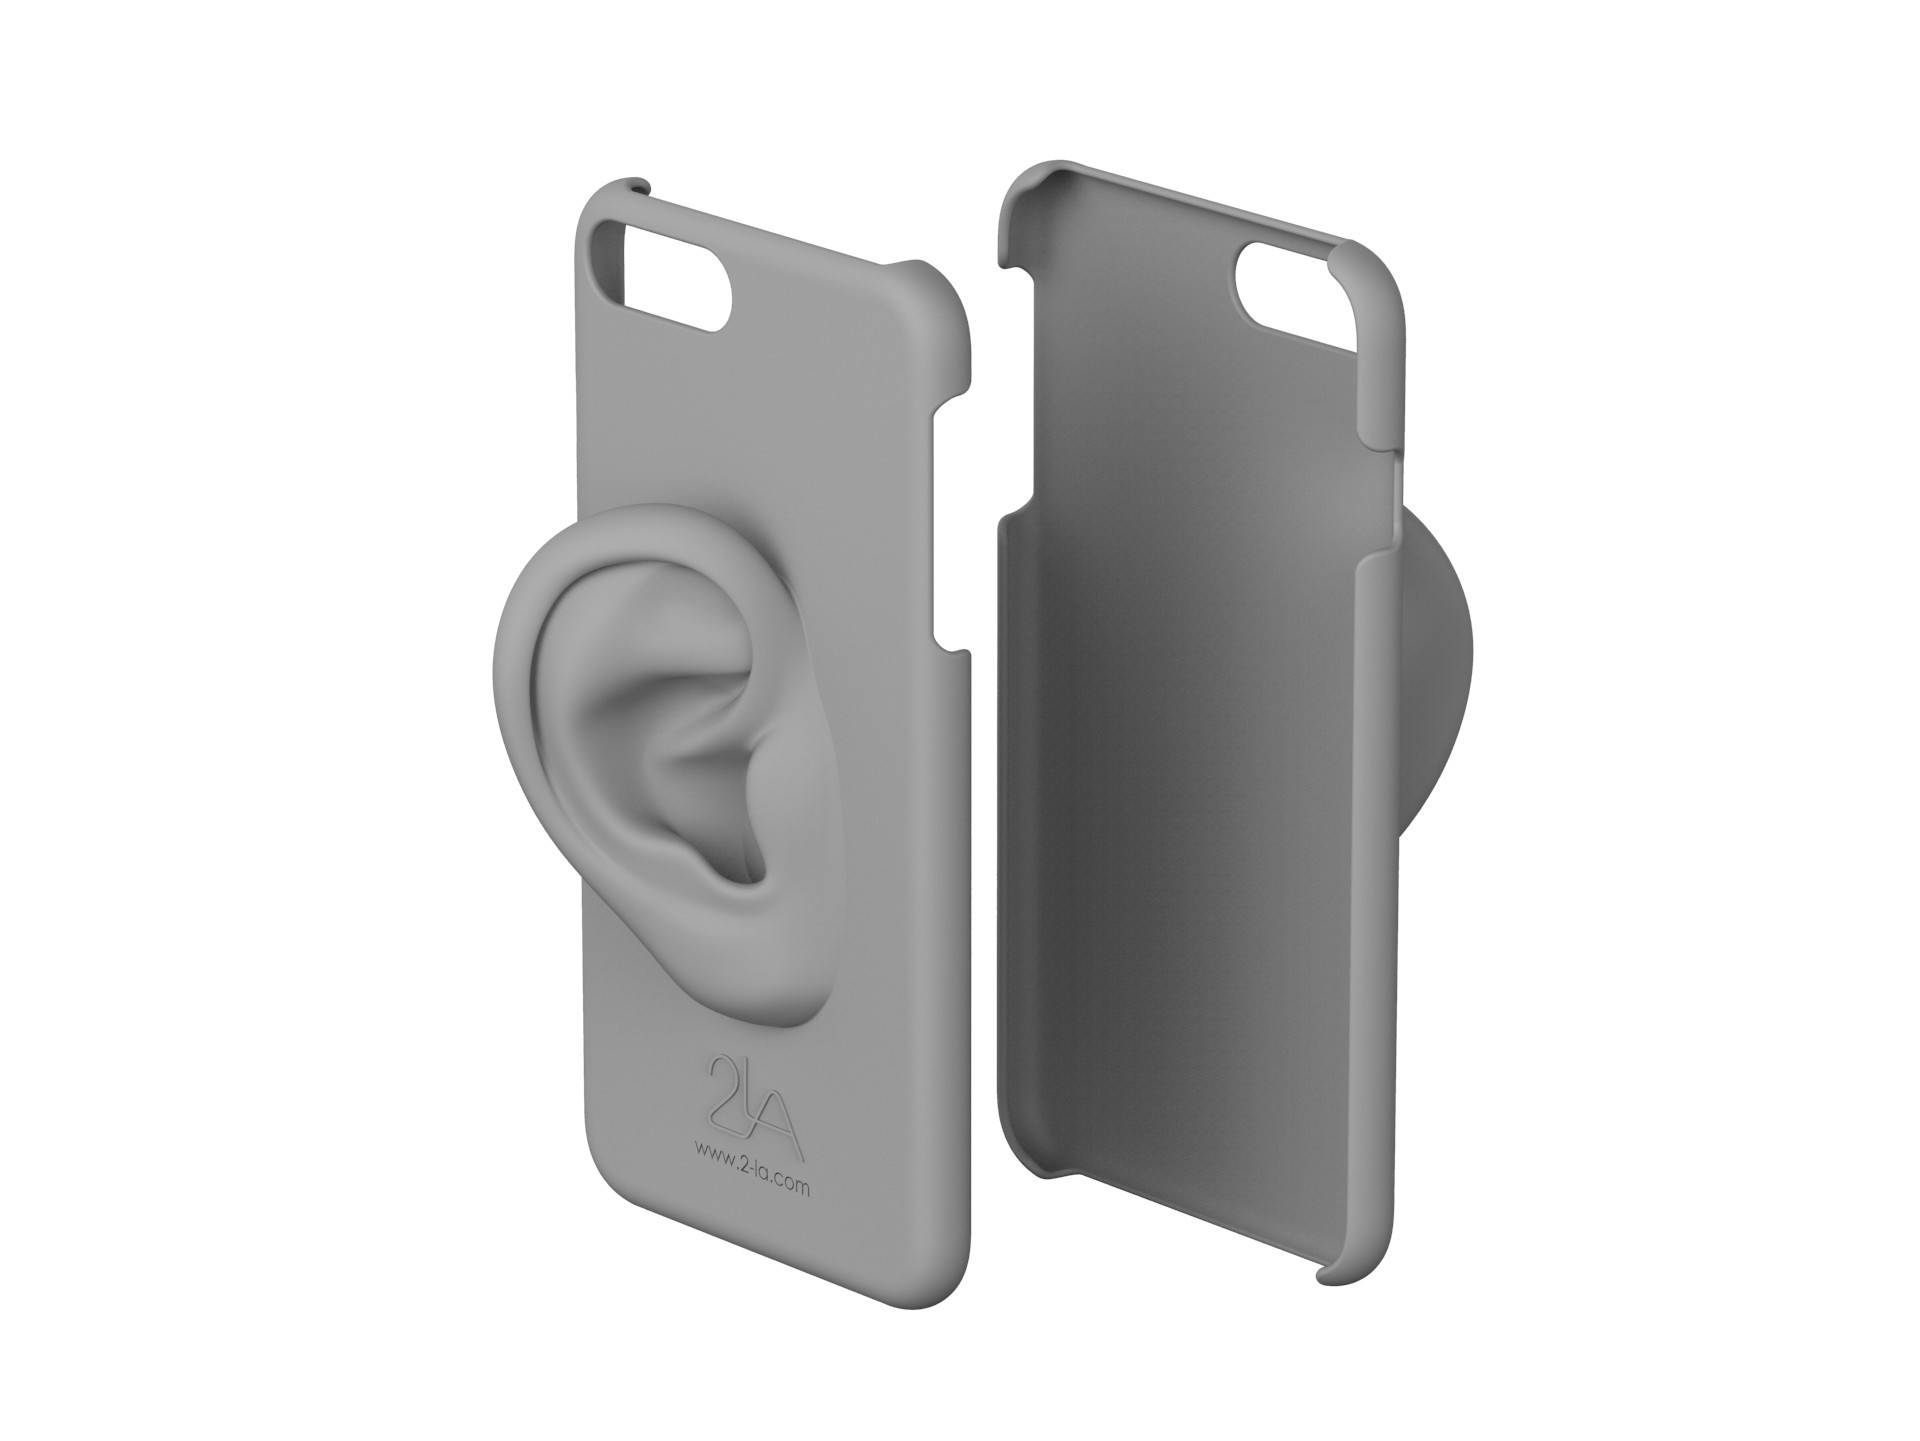 3rd ear iPhone case.2655.jpg Download free STL file 2-LA 3rd ear case for iPhone 7 plus • Template to 3D print, 2LA